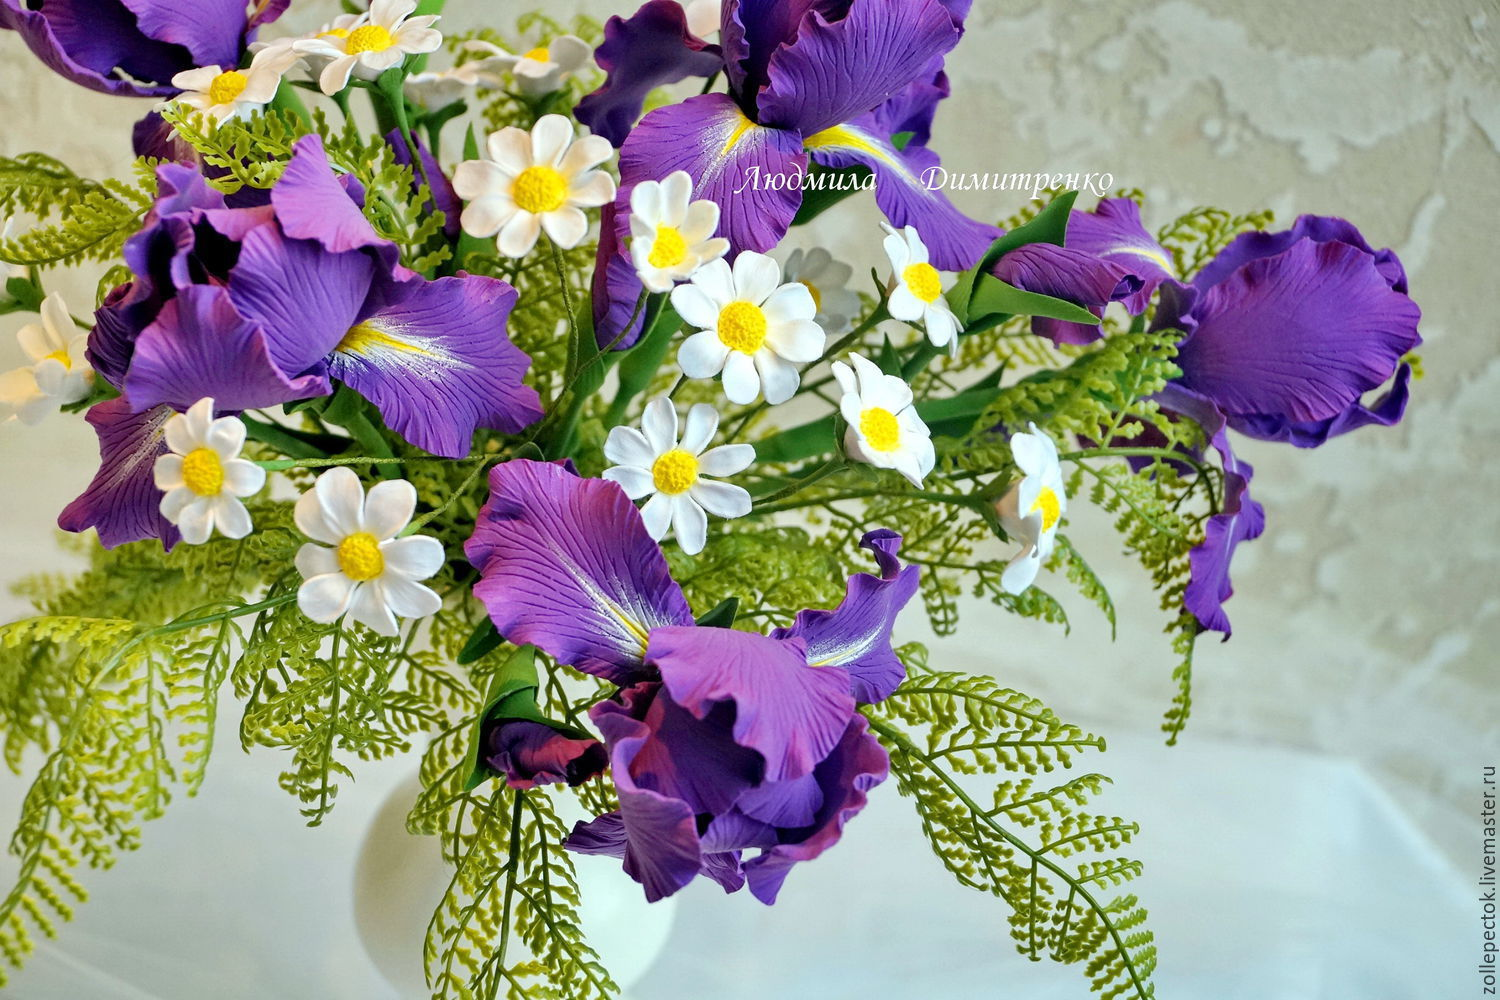 Bouquet irises daisies shop online on livemaster with shipping online shopping flowers handmade order bouquet irises daisies floristlyudmila zollepectok izmirmasajfo